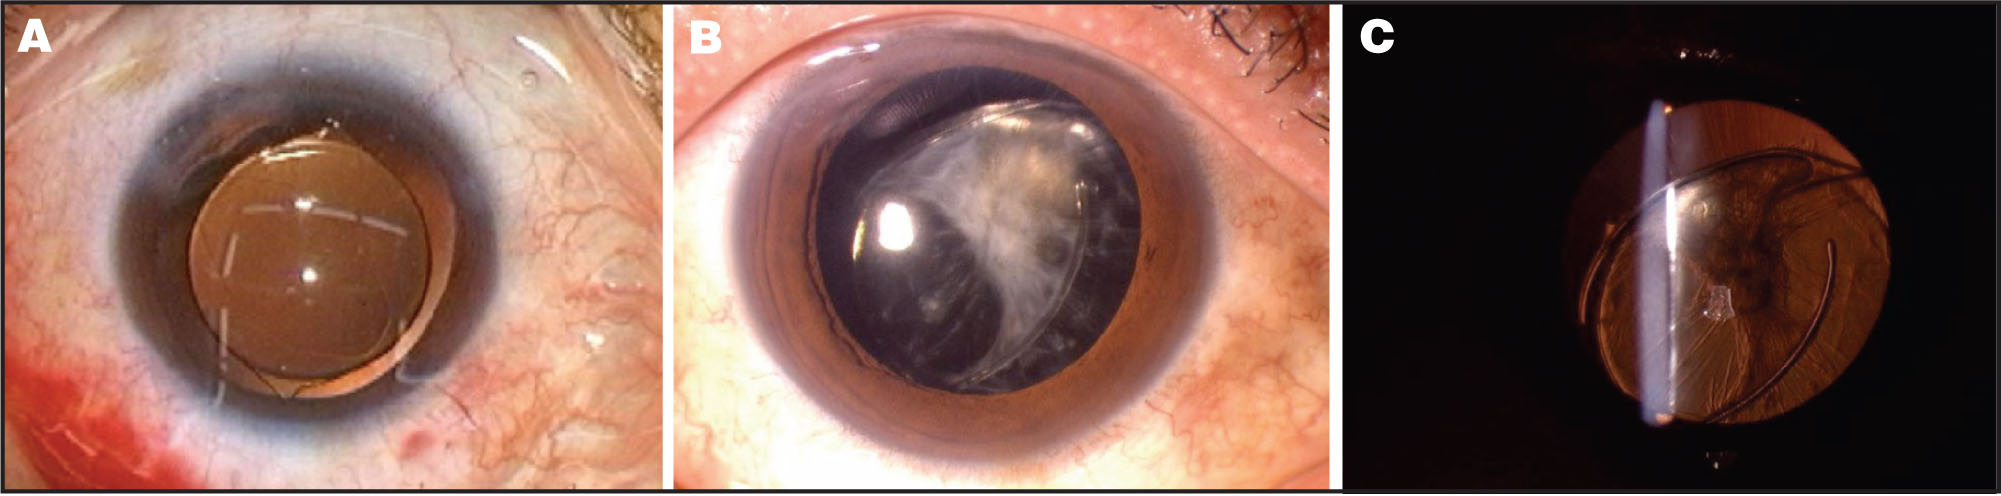 (A) the Intraocular (IOL) was Completely Inserted into the Capsular Bag, with the Edge of the Anterior Capsule Stretched Toward the IOL Haptics. (B) the Anterior Capsule Became Contracted, and the Continuous Curvilinear Capsulorrhexis Closed. (C) the Haptics of the IOL Became Detached from the Optics.